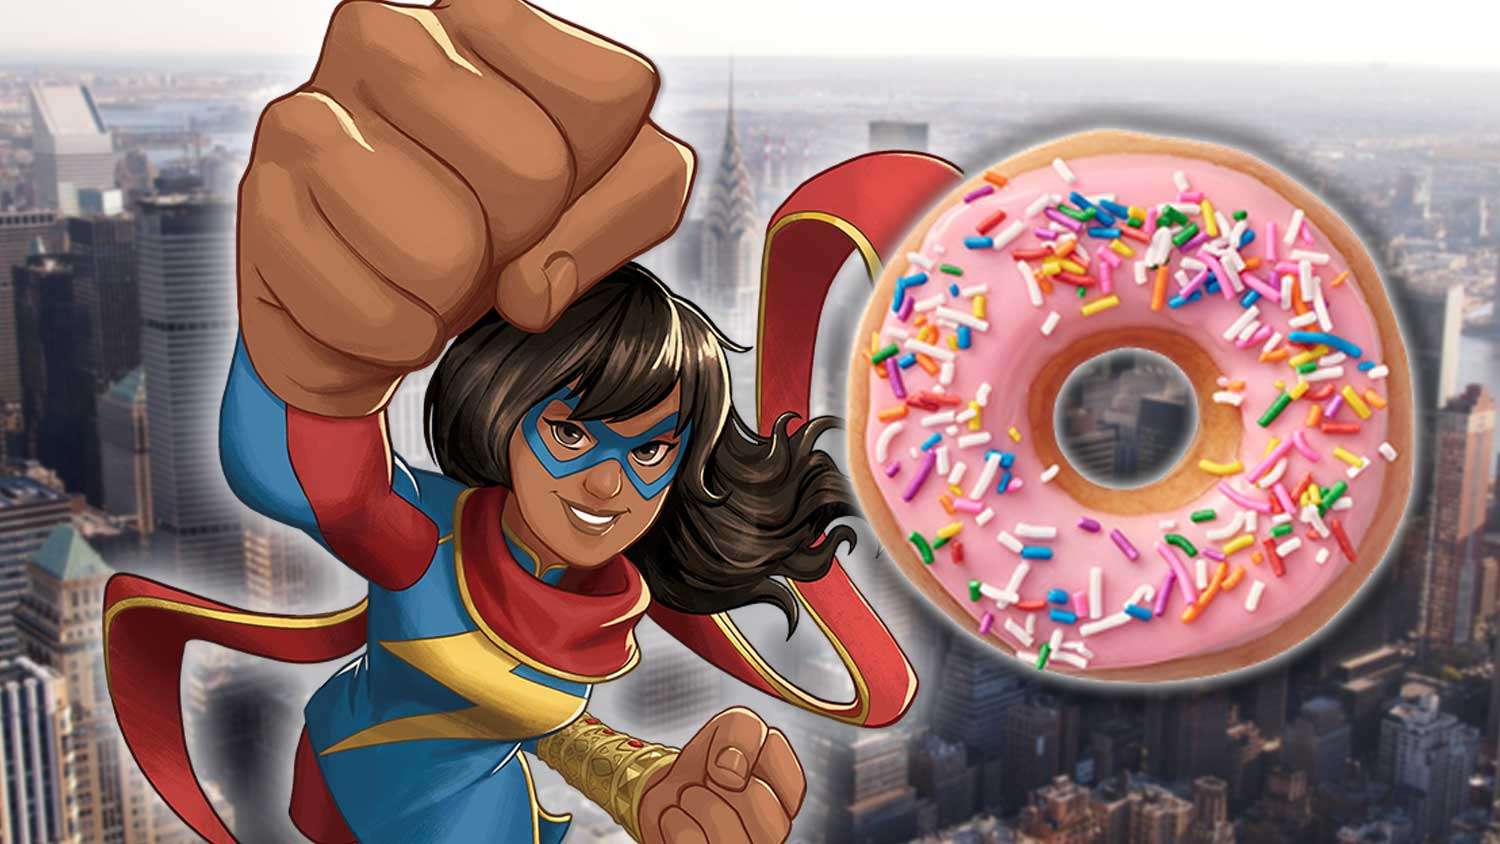 There's Now a Vegan Donut Shop In the Marvel Universe